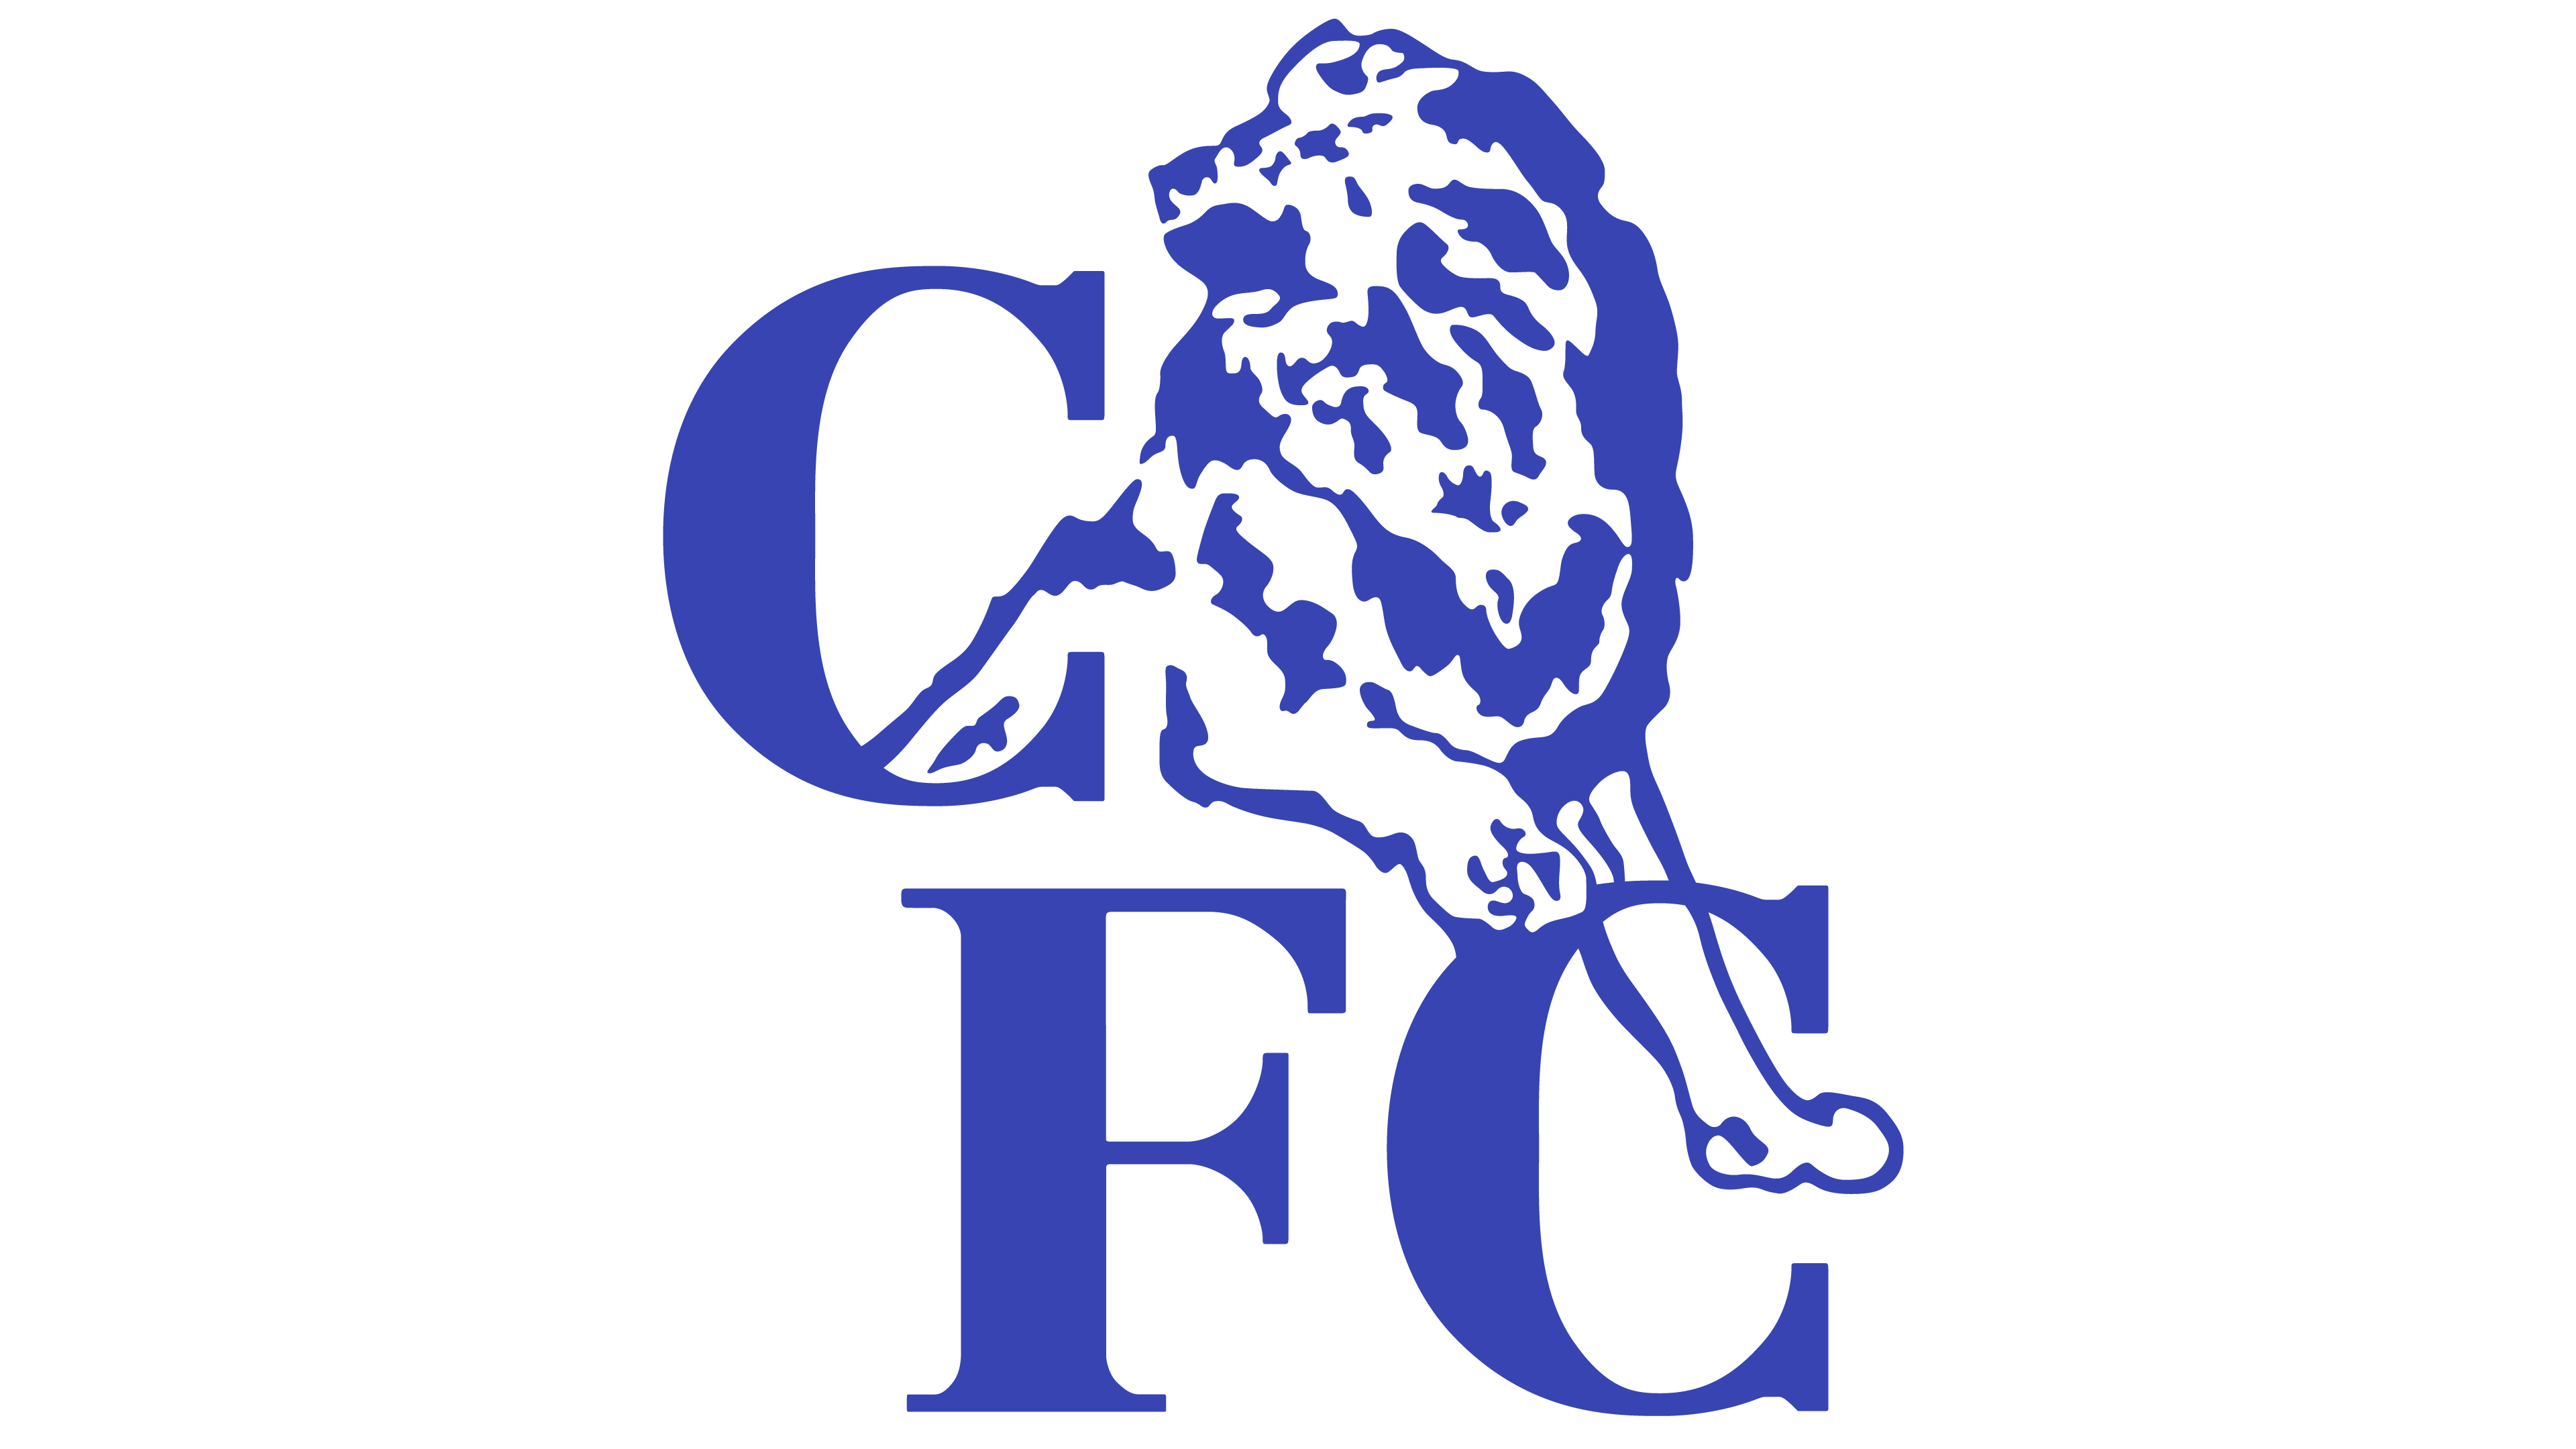 Chelsea badge png. Logo interesting history of